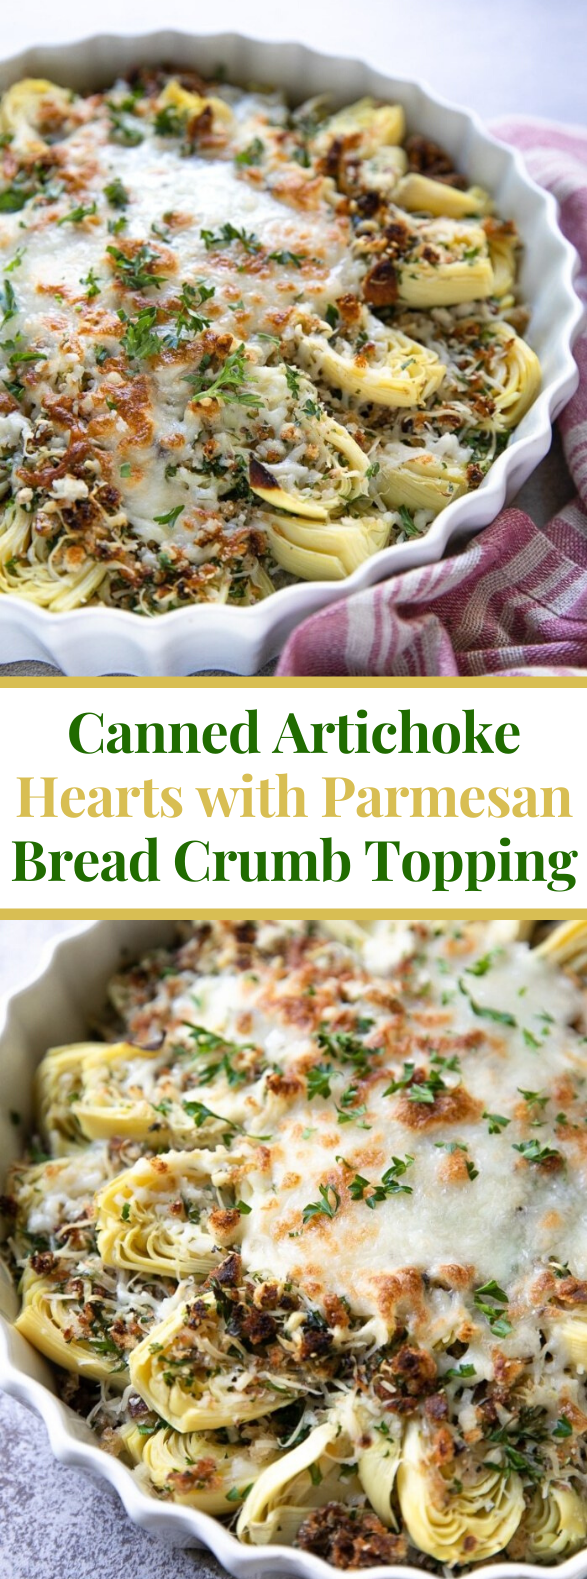 CANNED ARTICHOKE HEARTS WITH PARMESAN BREADCRUMB TOPPING #vegetarian #appetizers